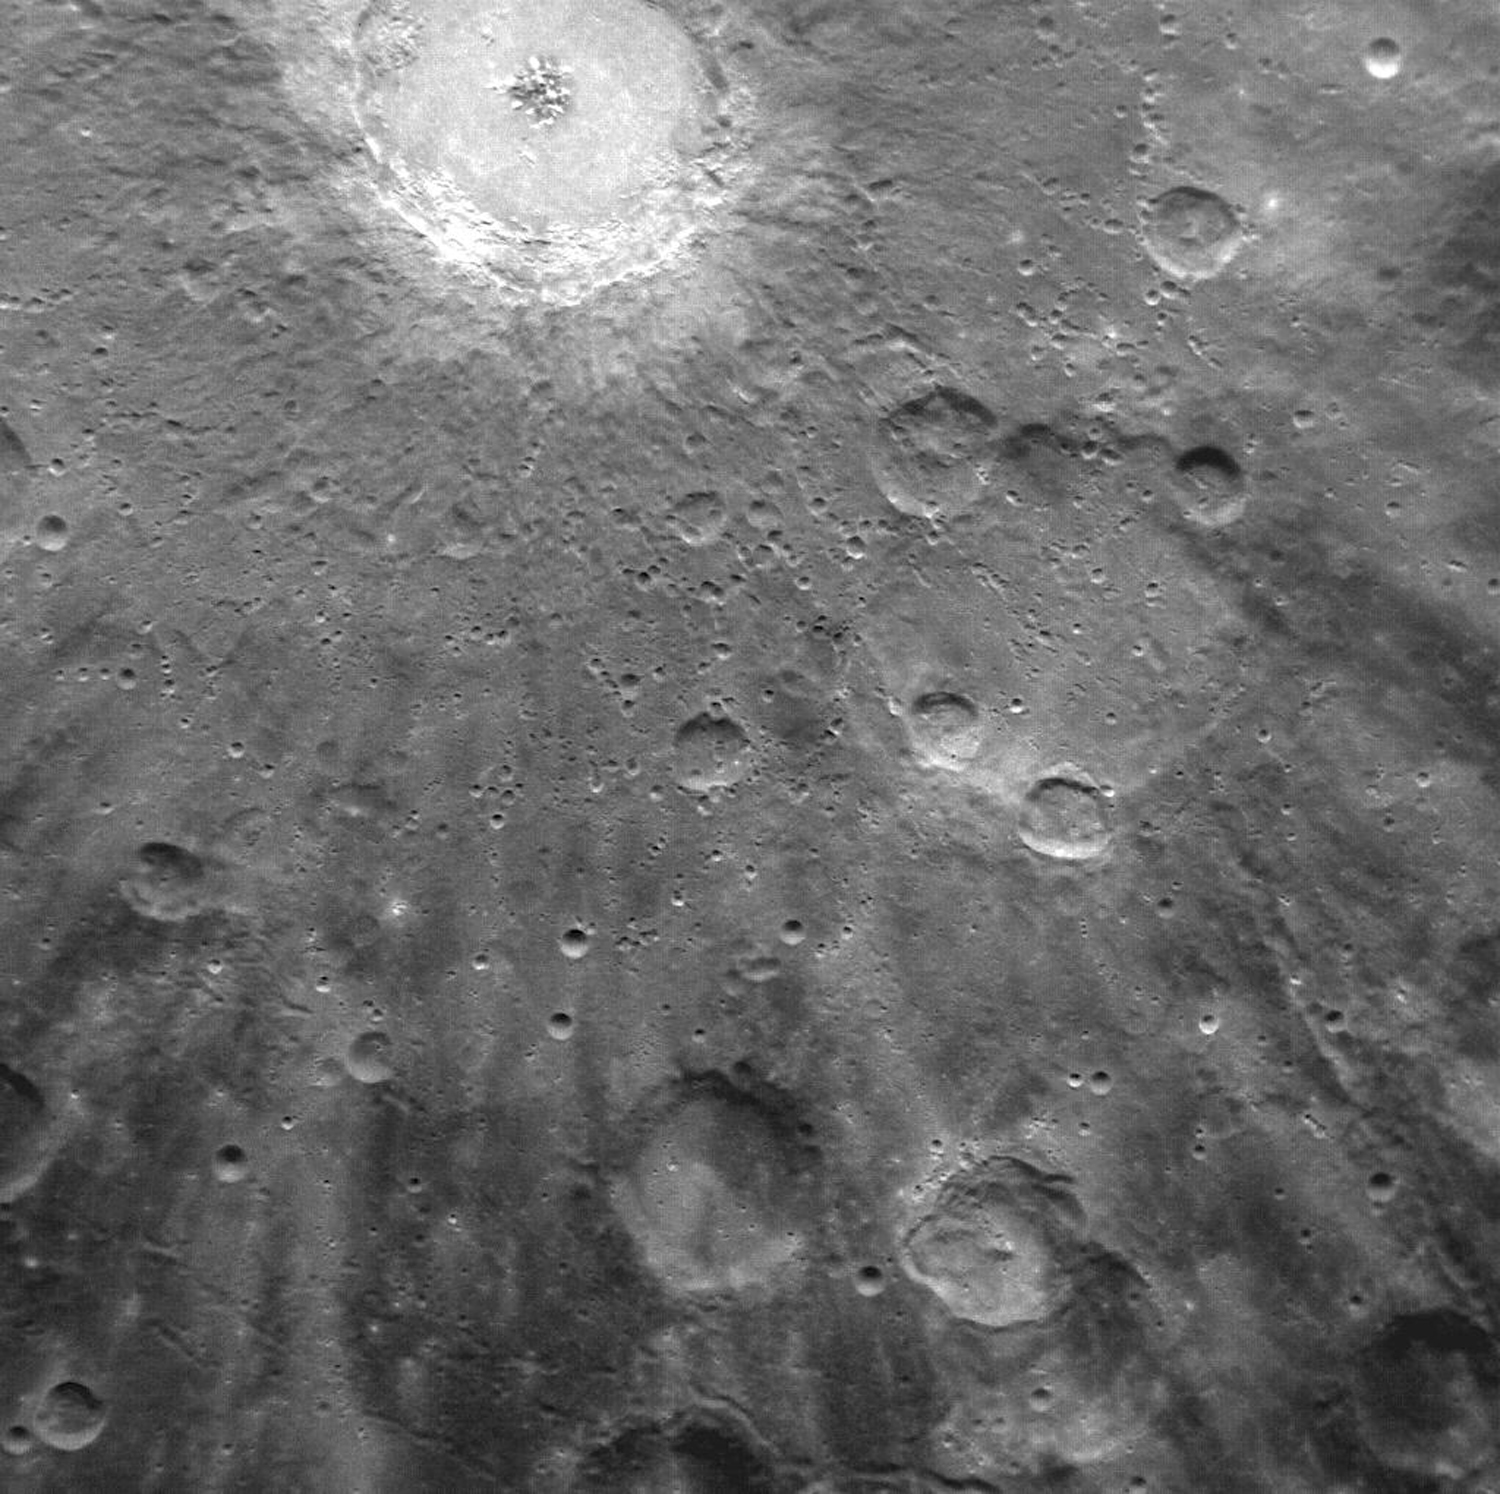 Mercury Obital View